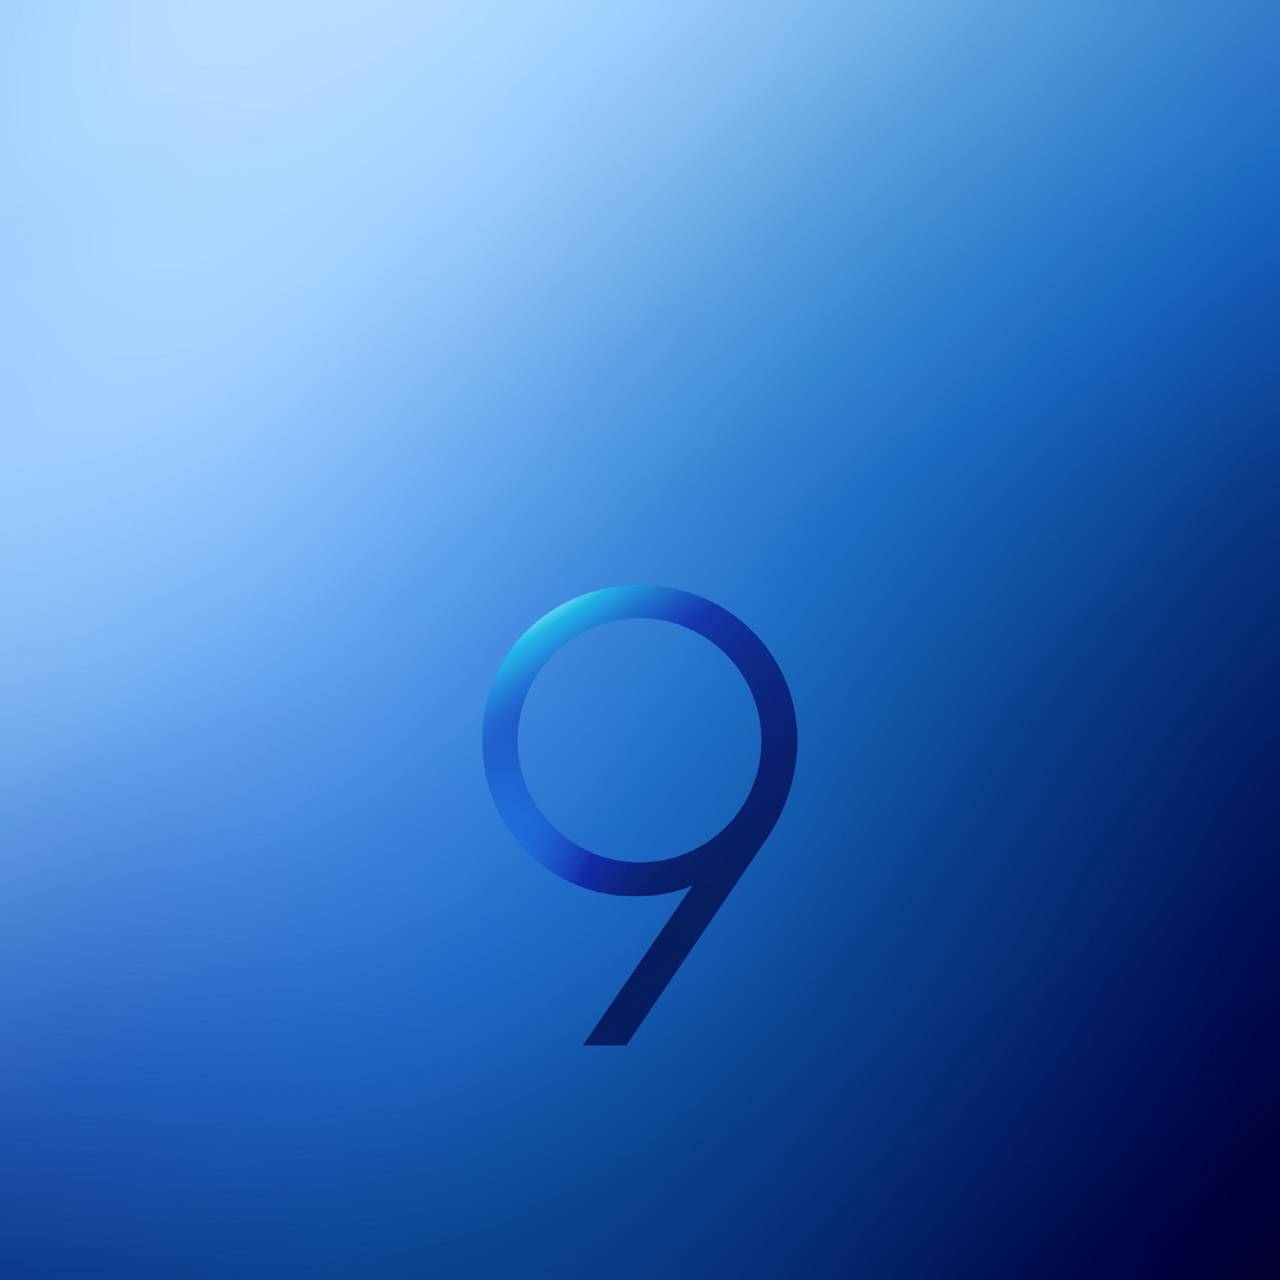 Samsung S9 Blue Wallpaper By Silencetv2015 75 Free On Zedge